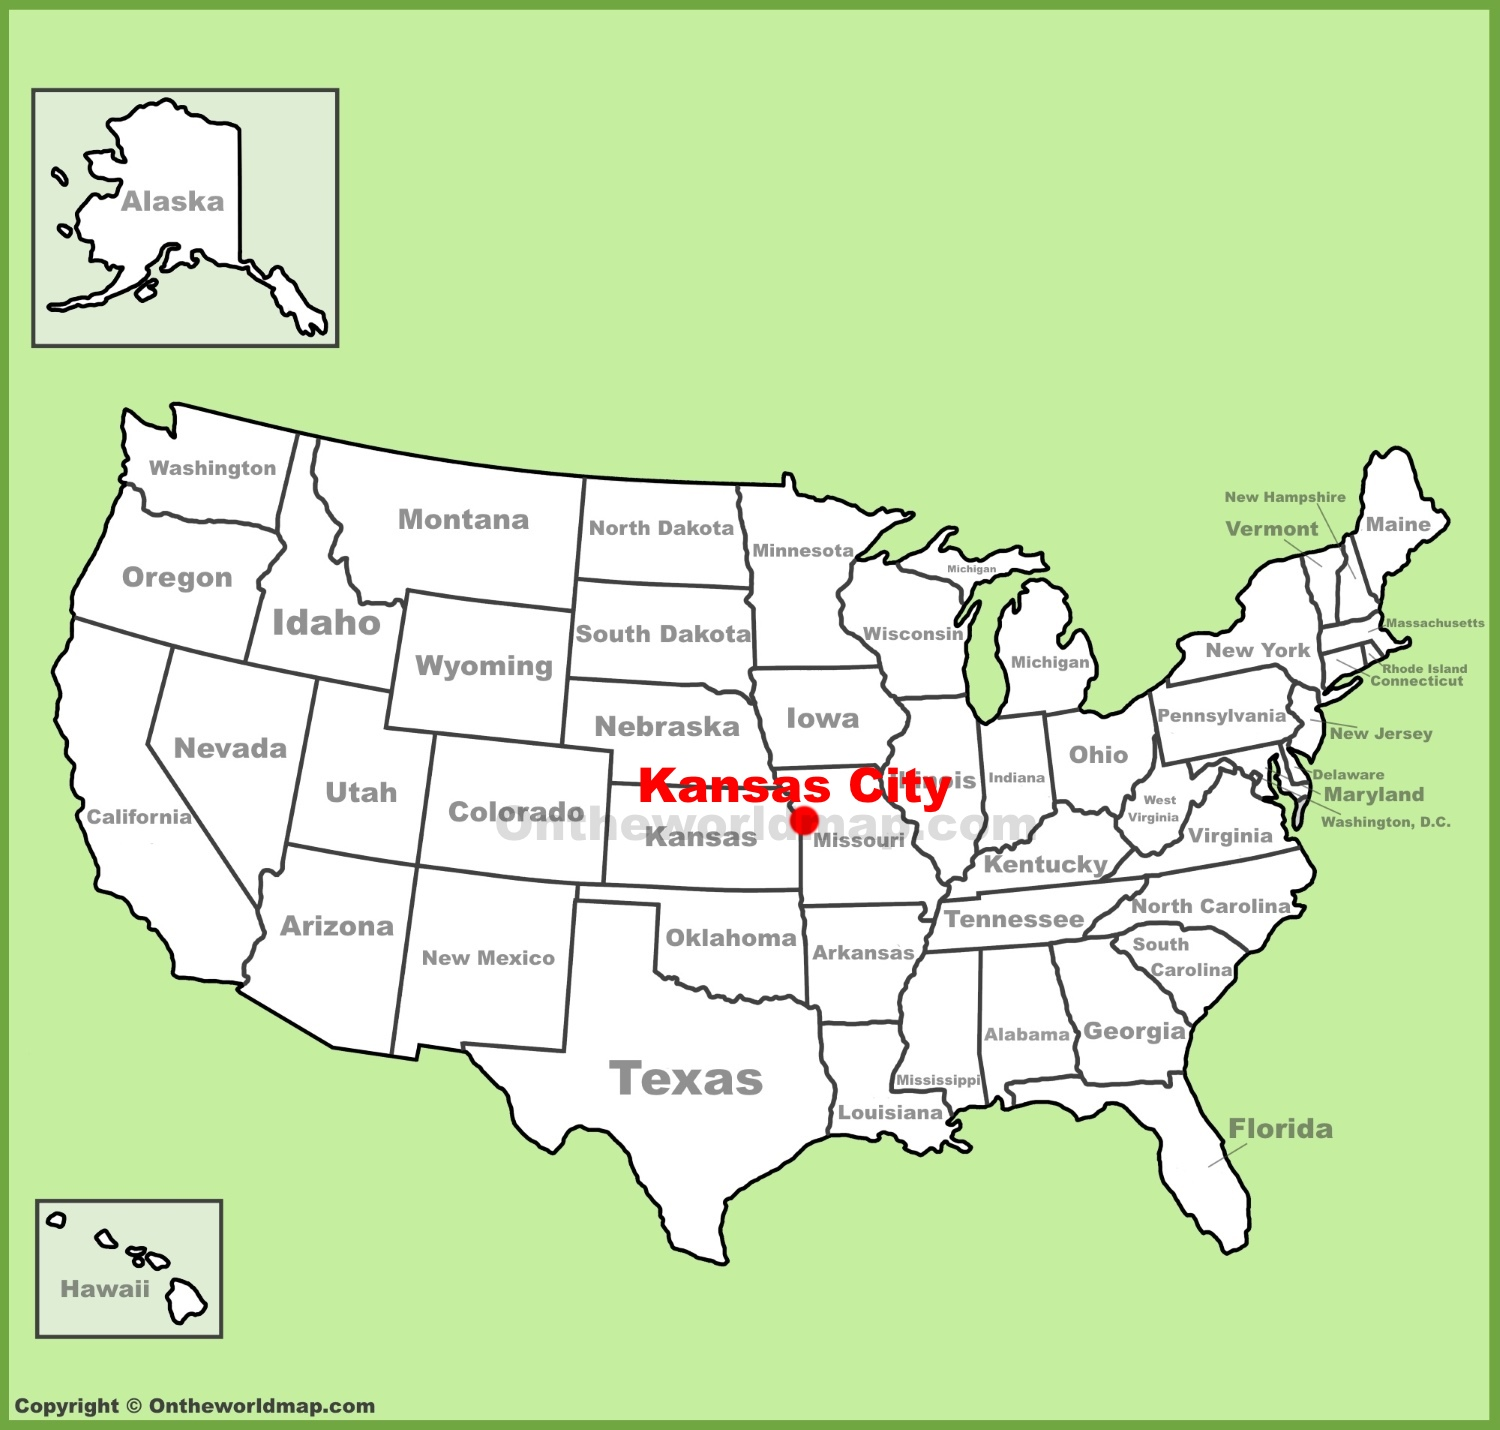 Kansas city location on the us map kansas city location on the us map sciox Image collections